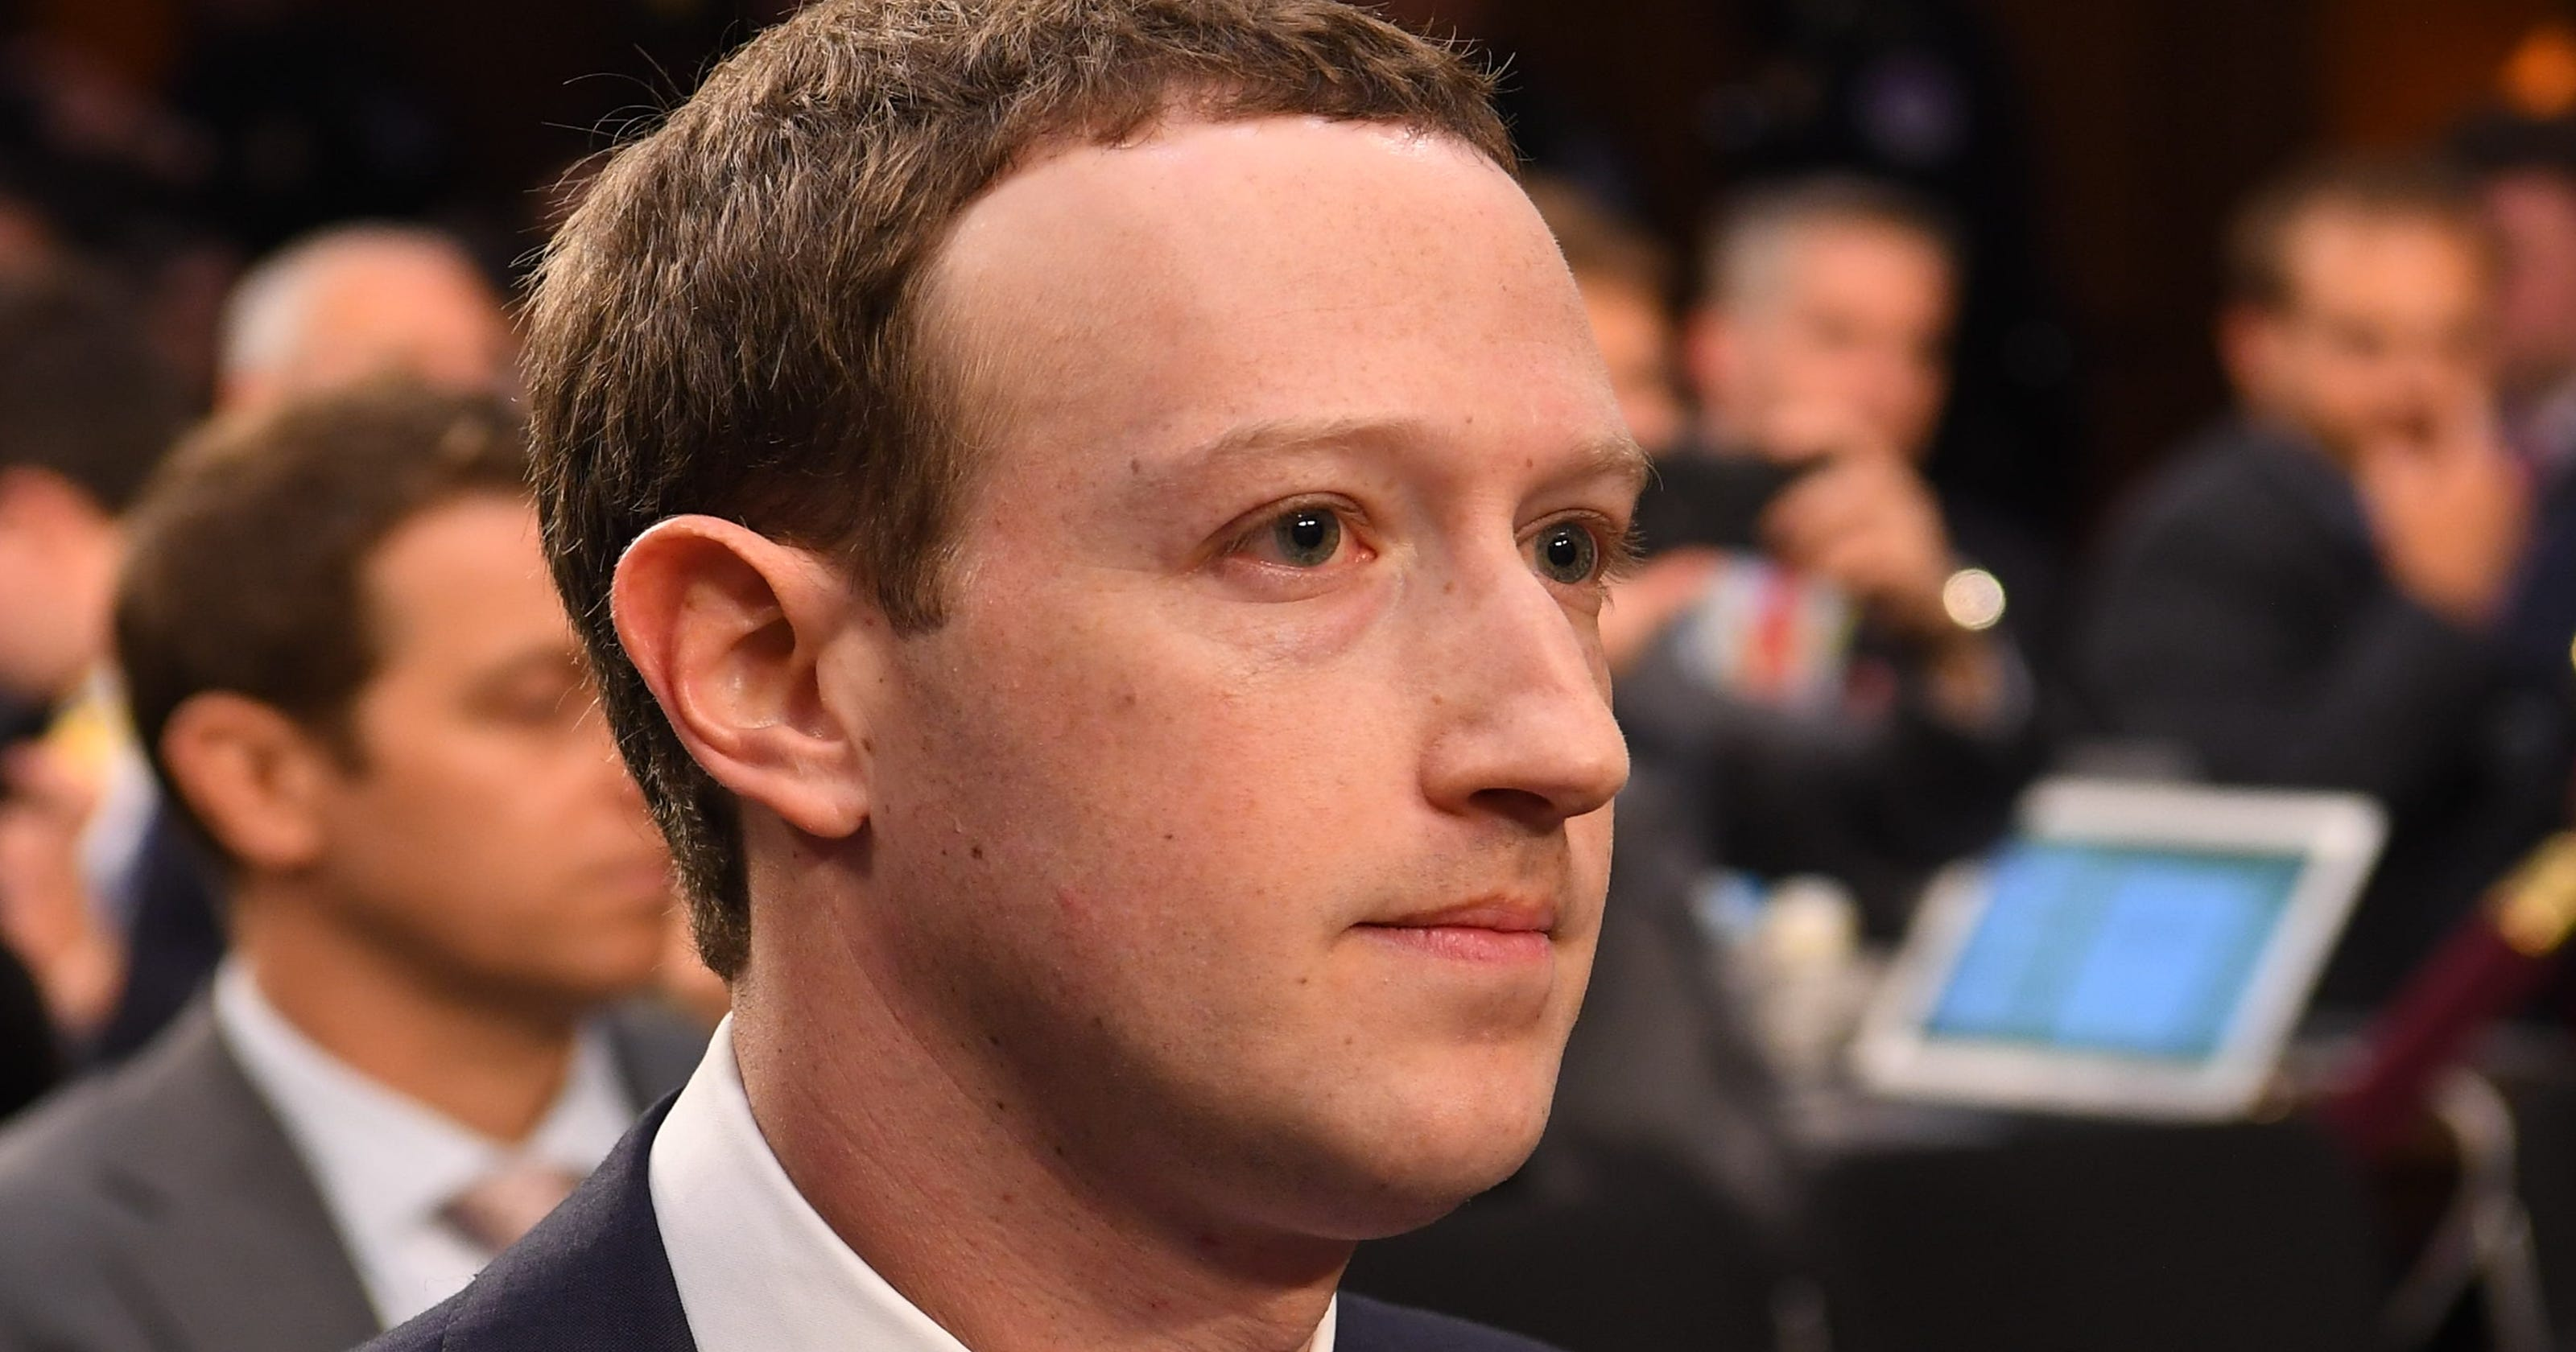 Facebook's Zuckerberg testifies to Congress again: Here's what's at